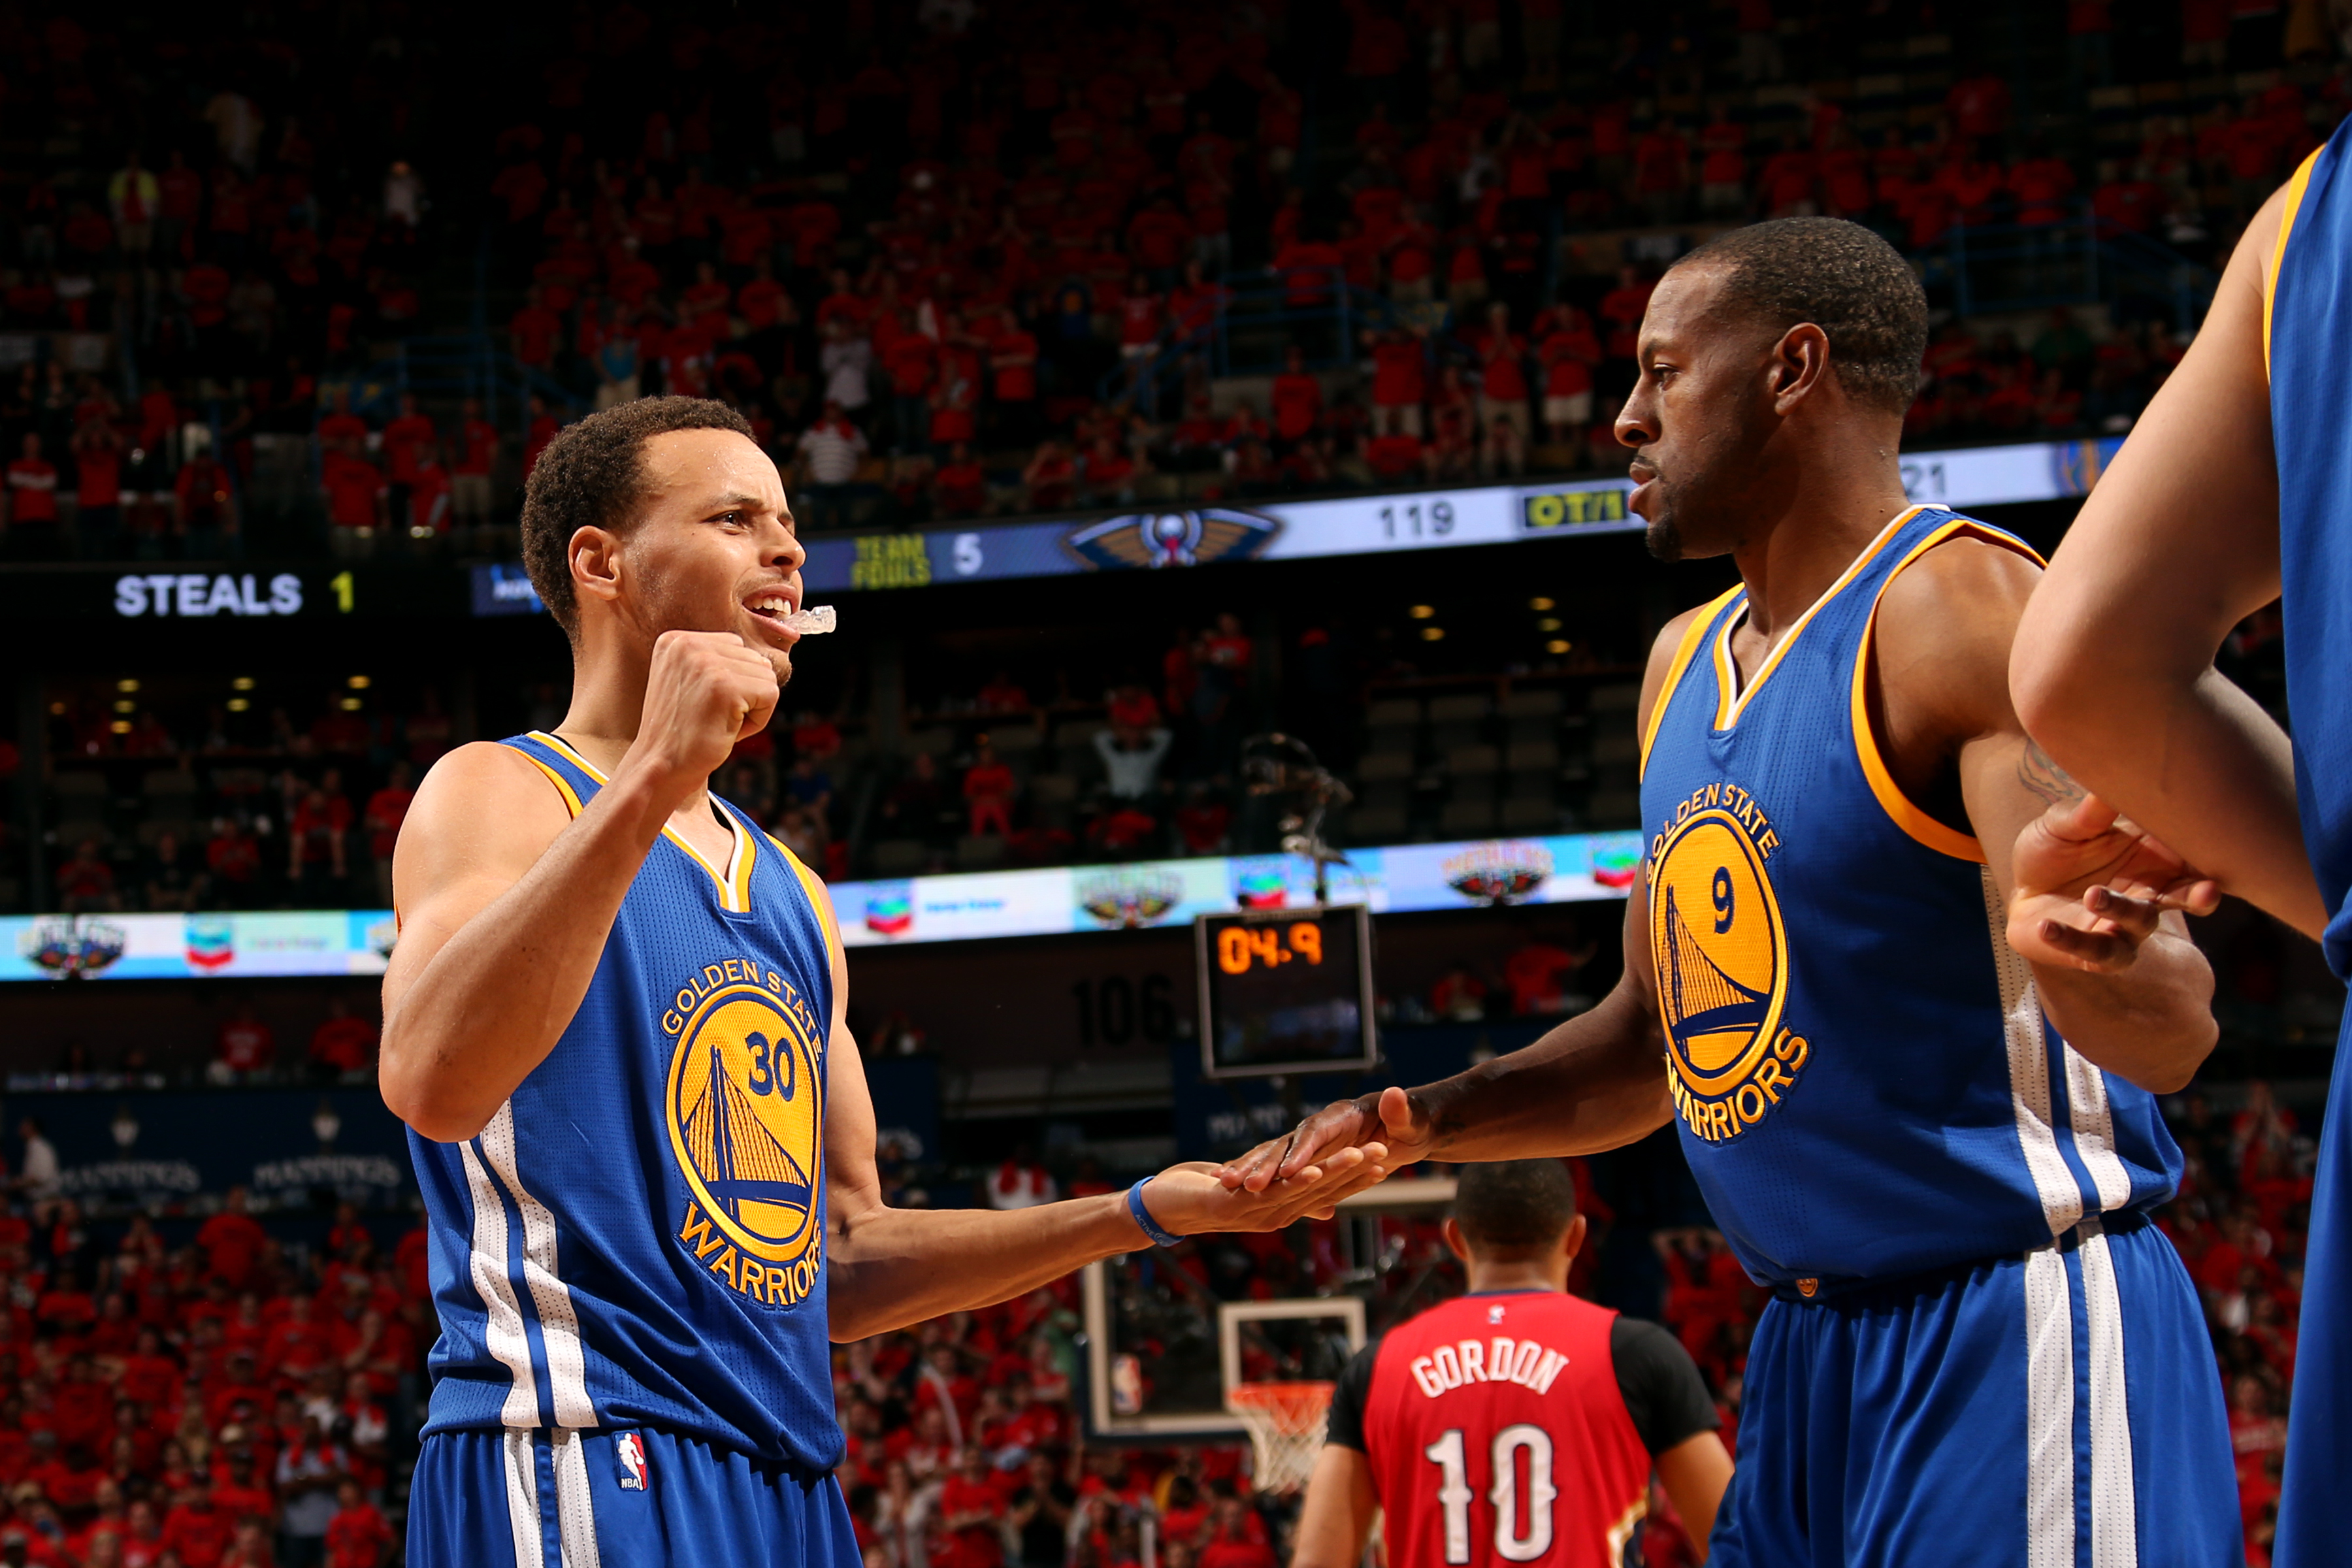 NEW ORLEANS, LA - APRIL 23: Stephen Curry #30 and Andre Iguodala #9 of the Golden State Warriors celebrate during a game against the New Orleans Pelicans in Game Three of the Western Conference Quarterfinals during the NBA Playoffs on April 23, 2015 at Sm